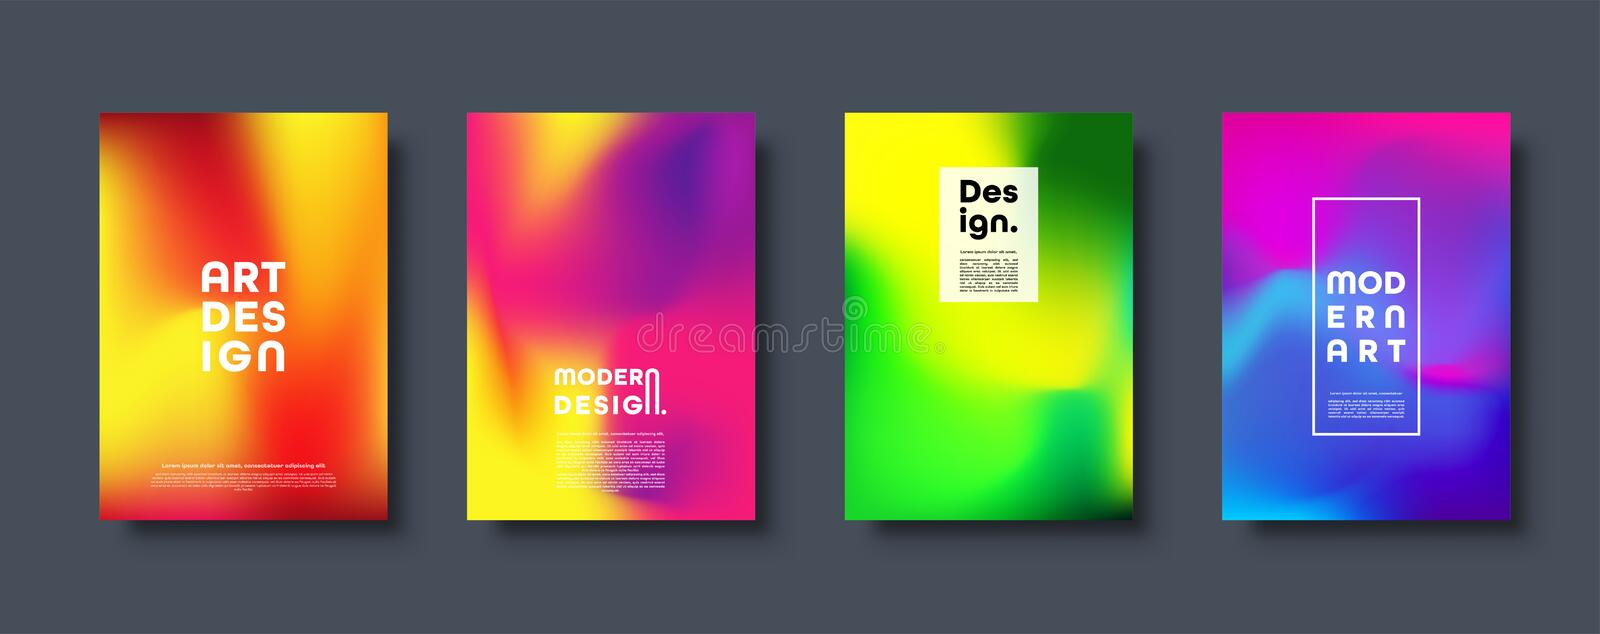 Abstract modern design background. Colorful neon gradient. Dynamic northern lights colors. Eps10 vector. vector illustration